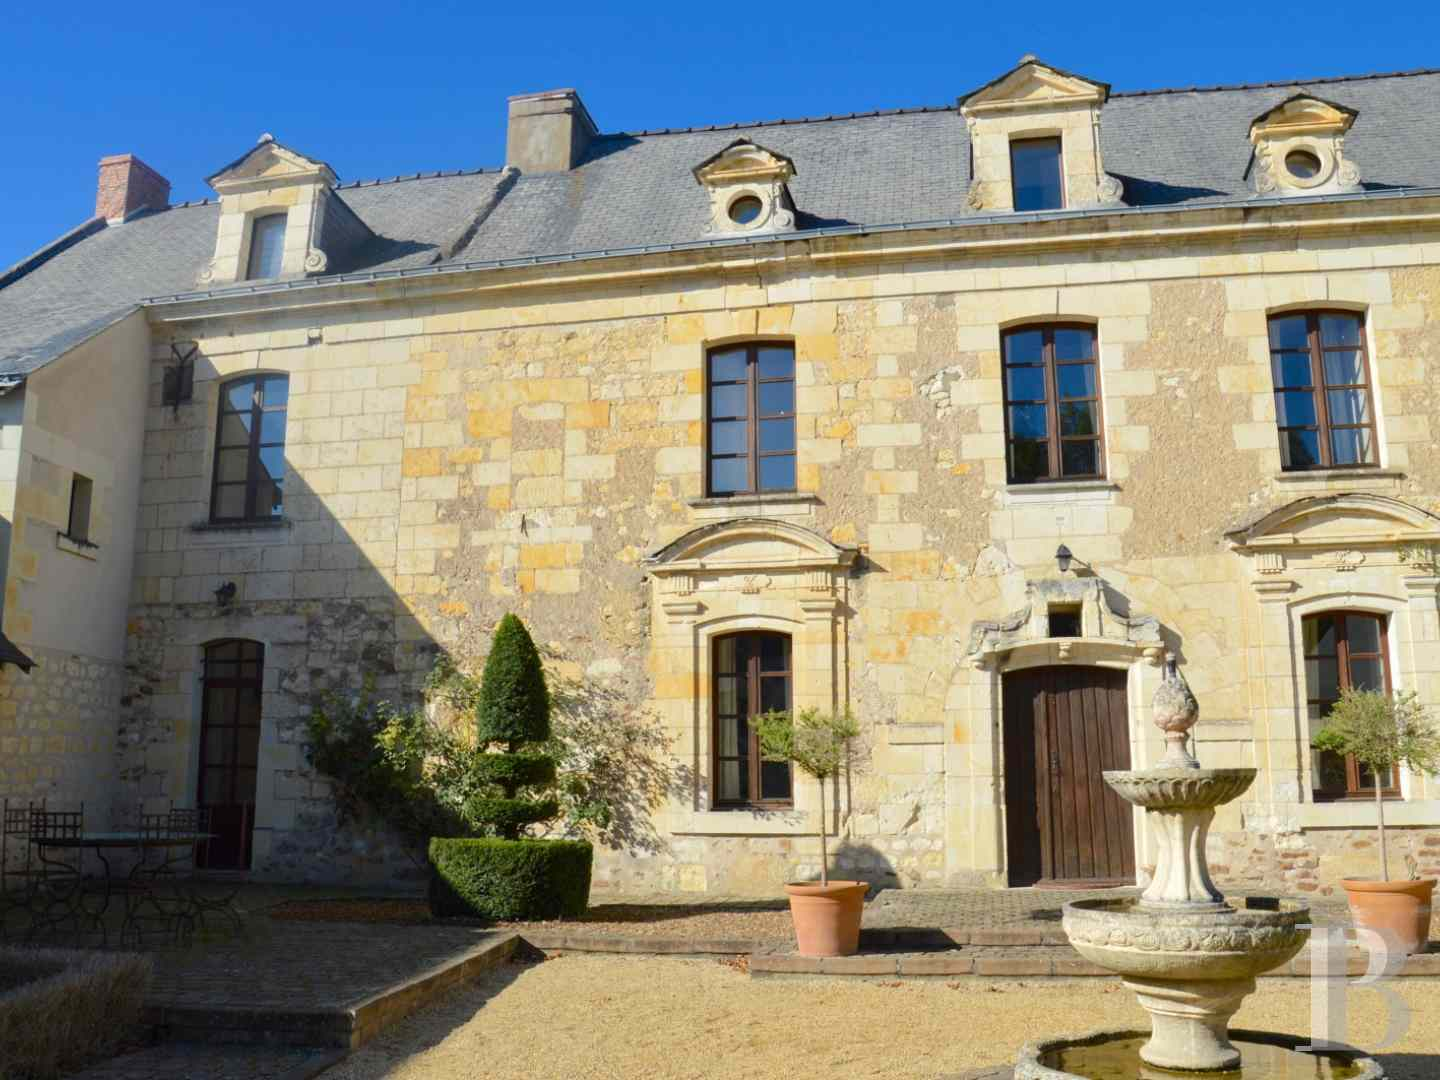 France mansions for sale pays de loire manor house - 2 zoom